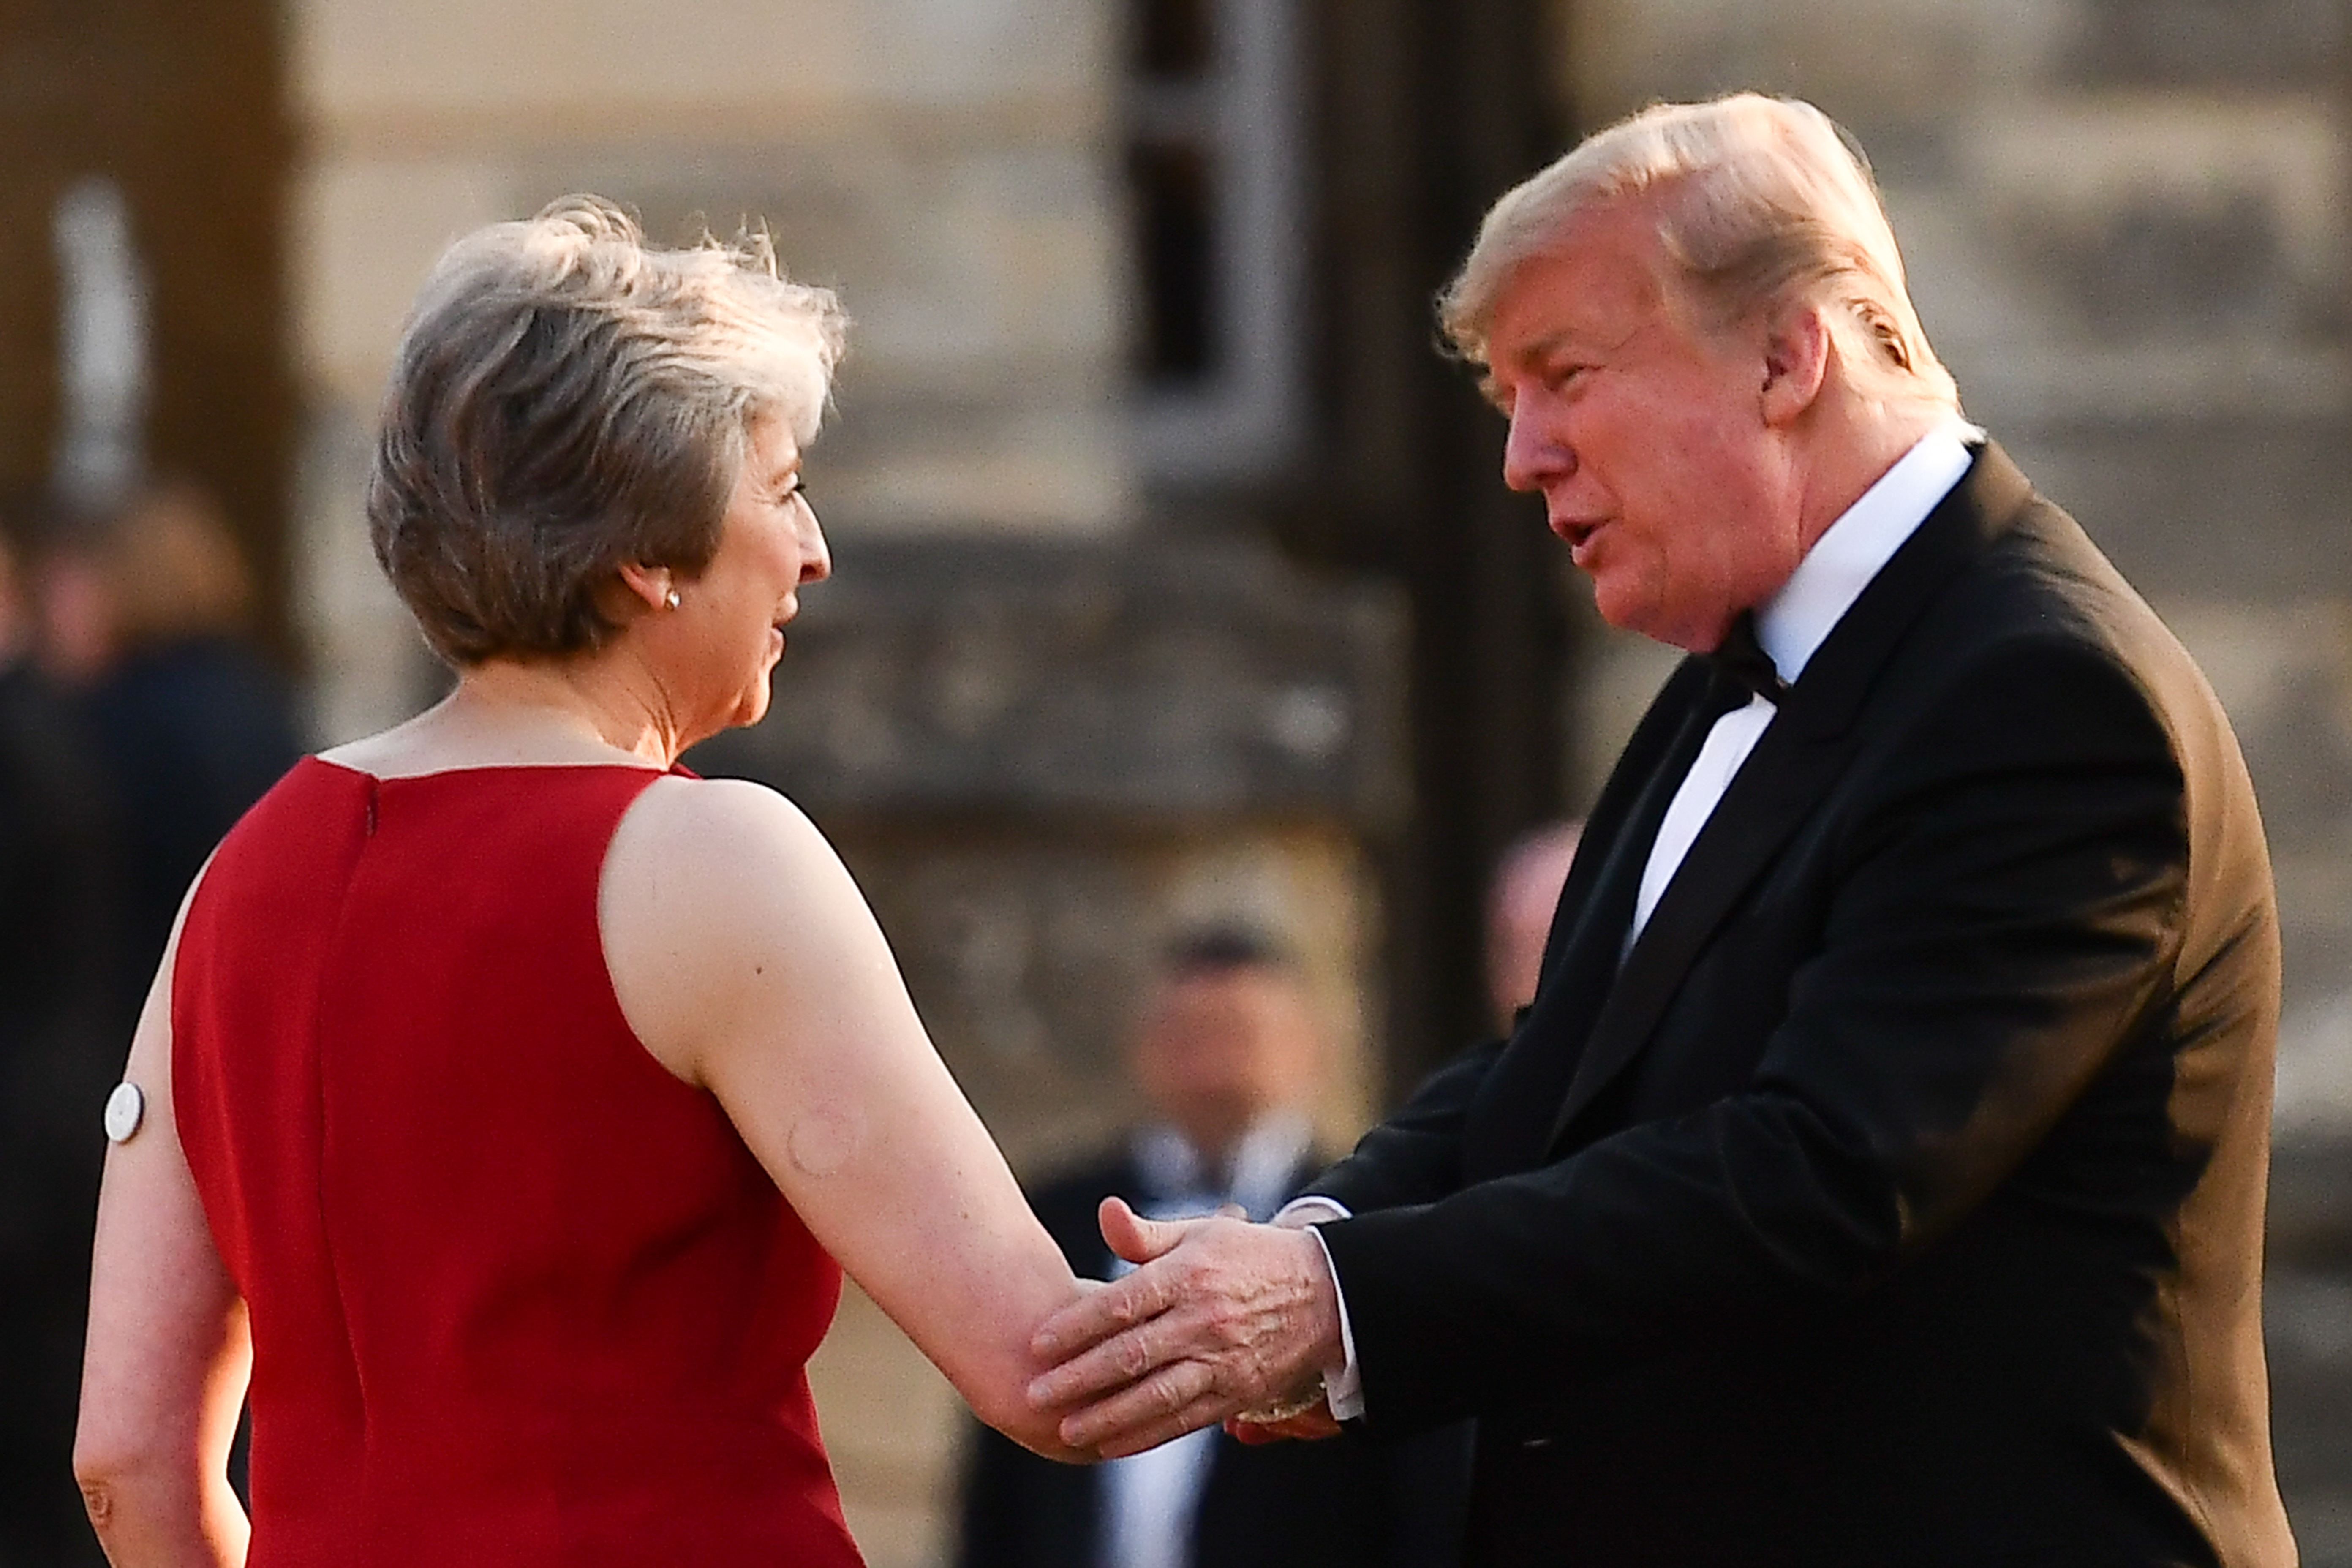 Britain's Prime Minister Theresa May greets U.S. President Donald Trump at Blenheim Palace on July 12, 2018 in Woodstock, England.